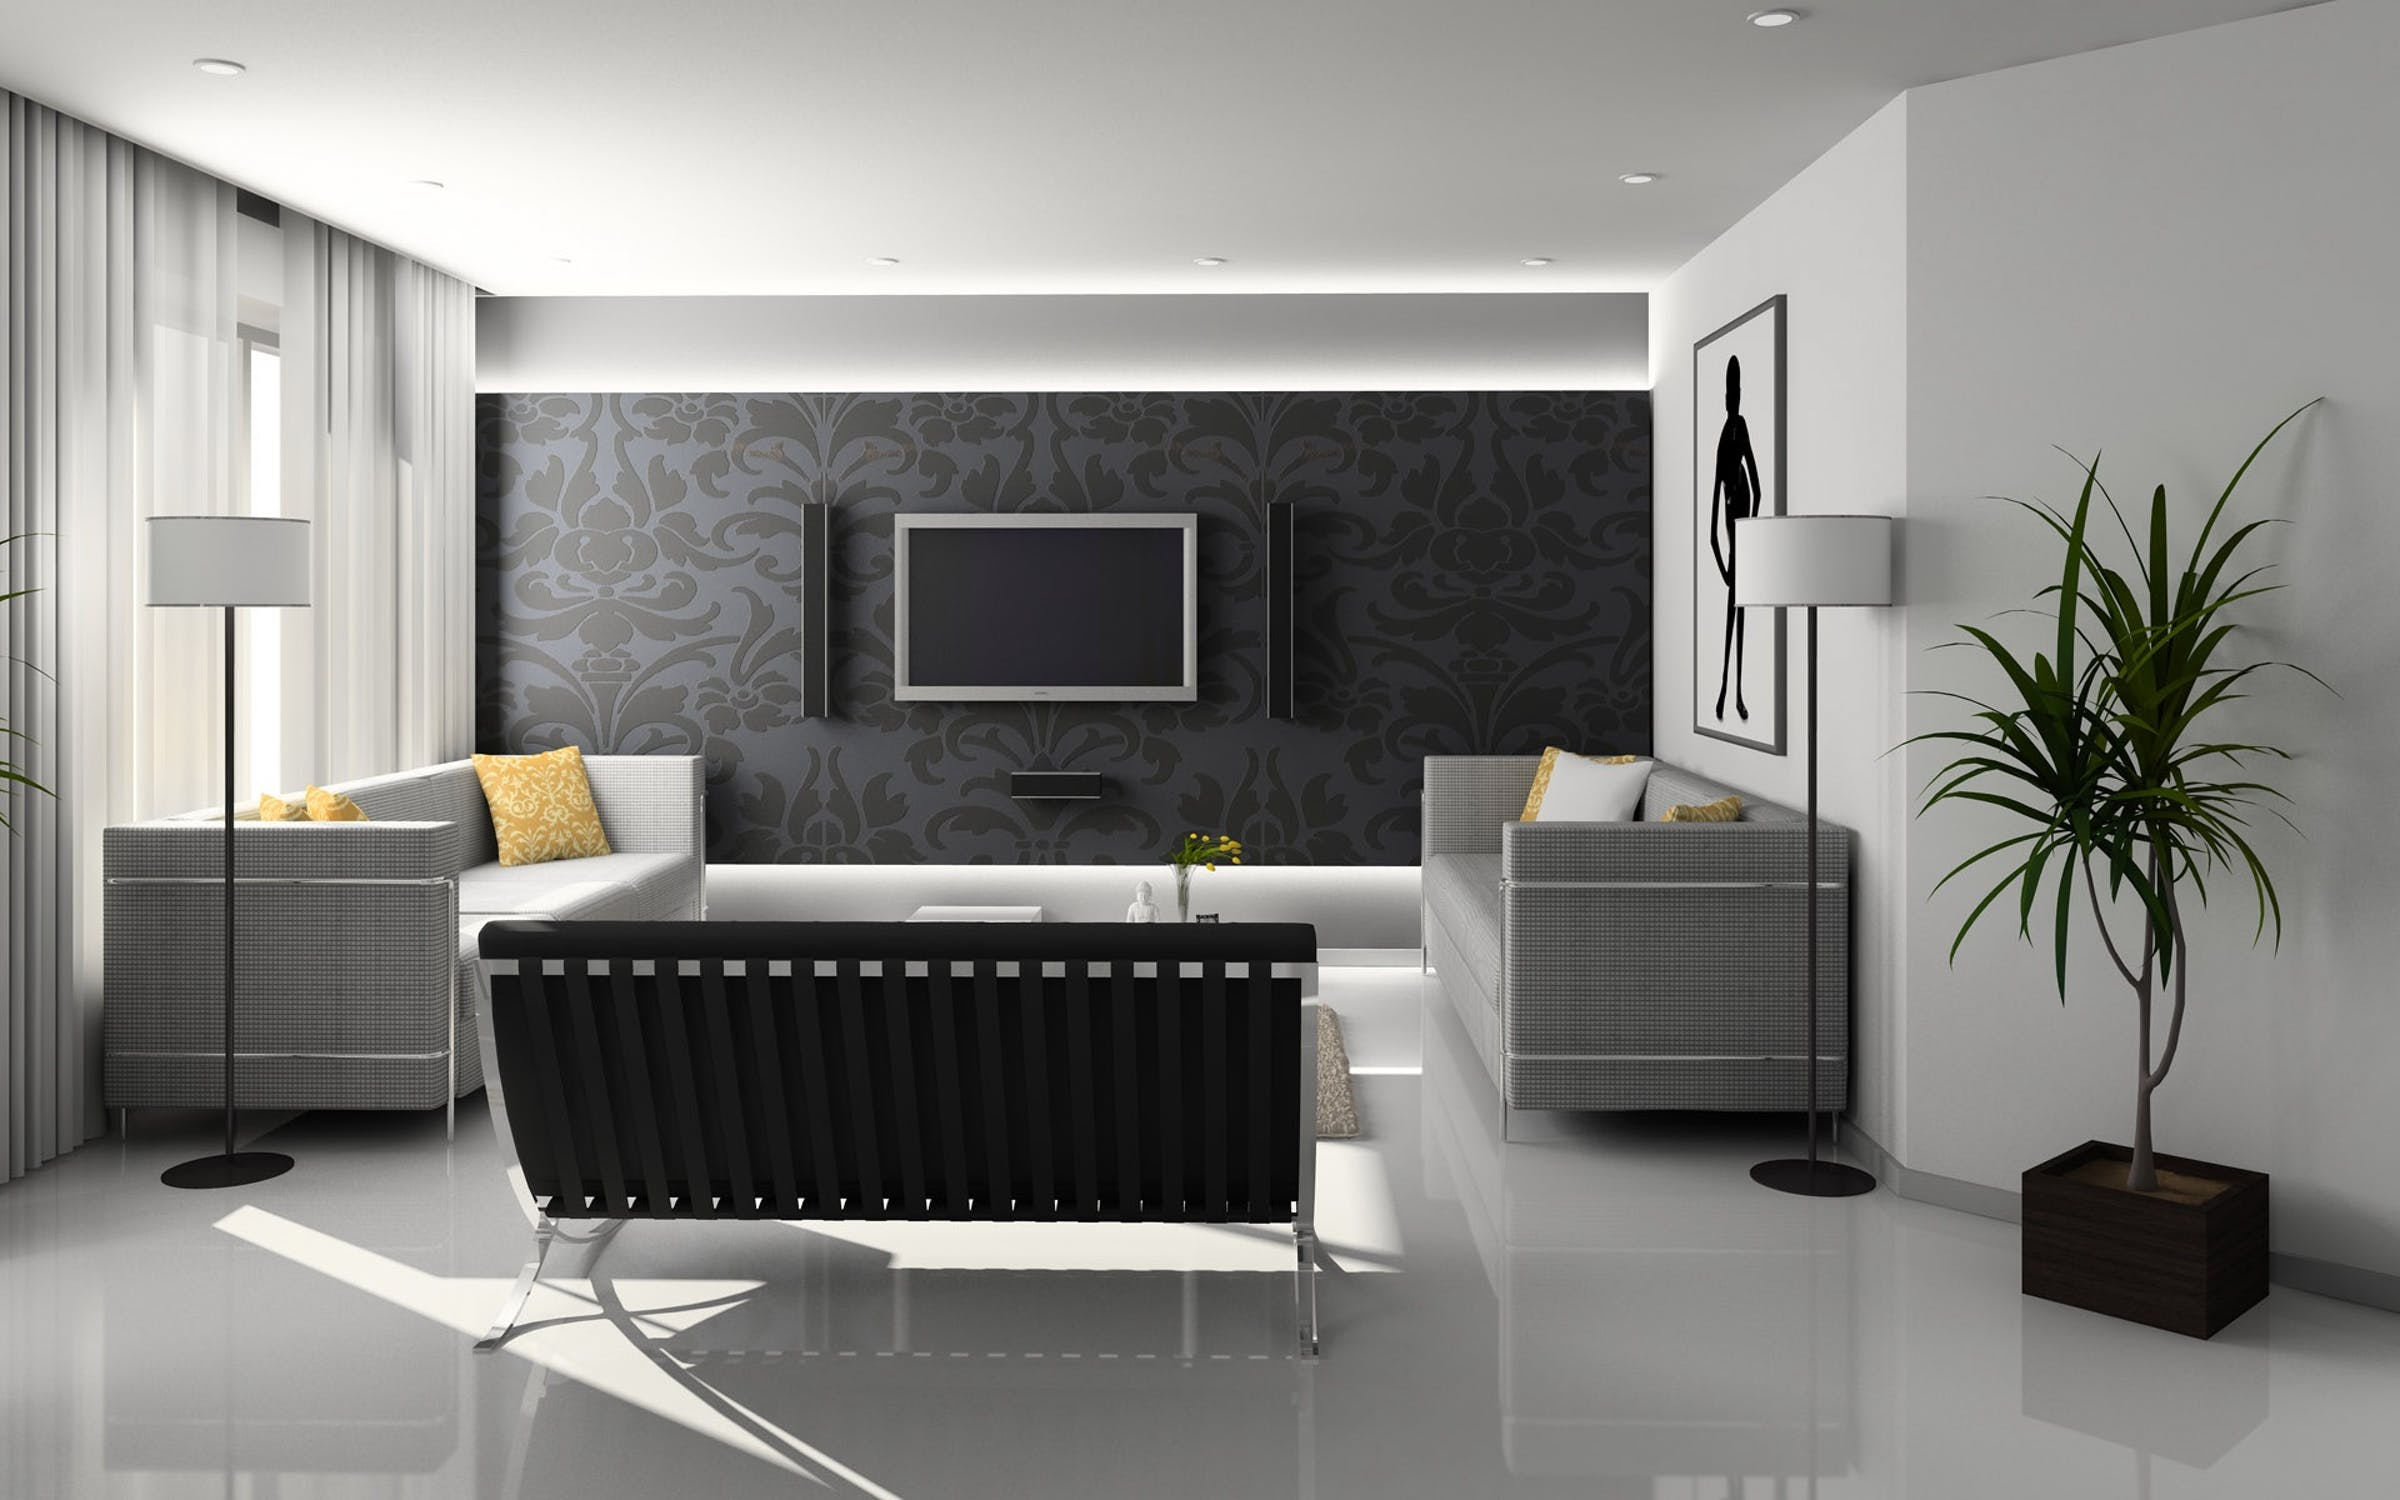 Feel free to choose from a lot of different modern styles to make your home as cosey as possible!